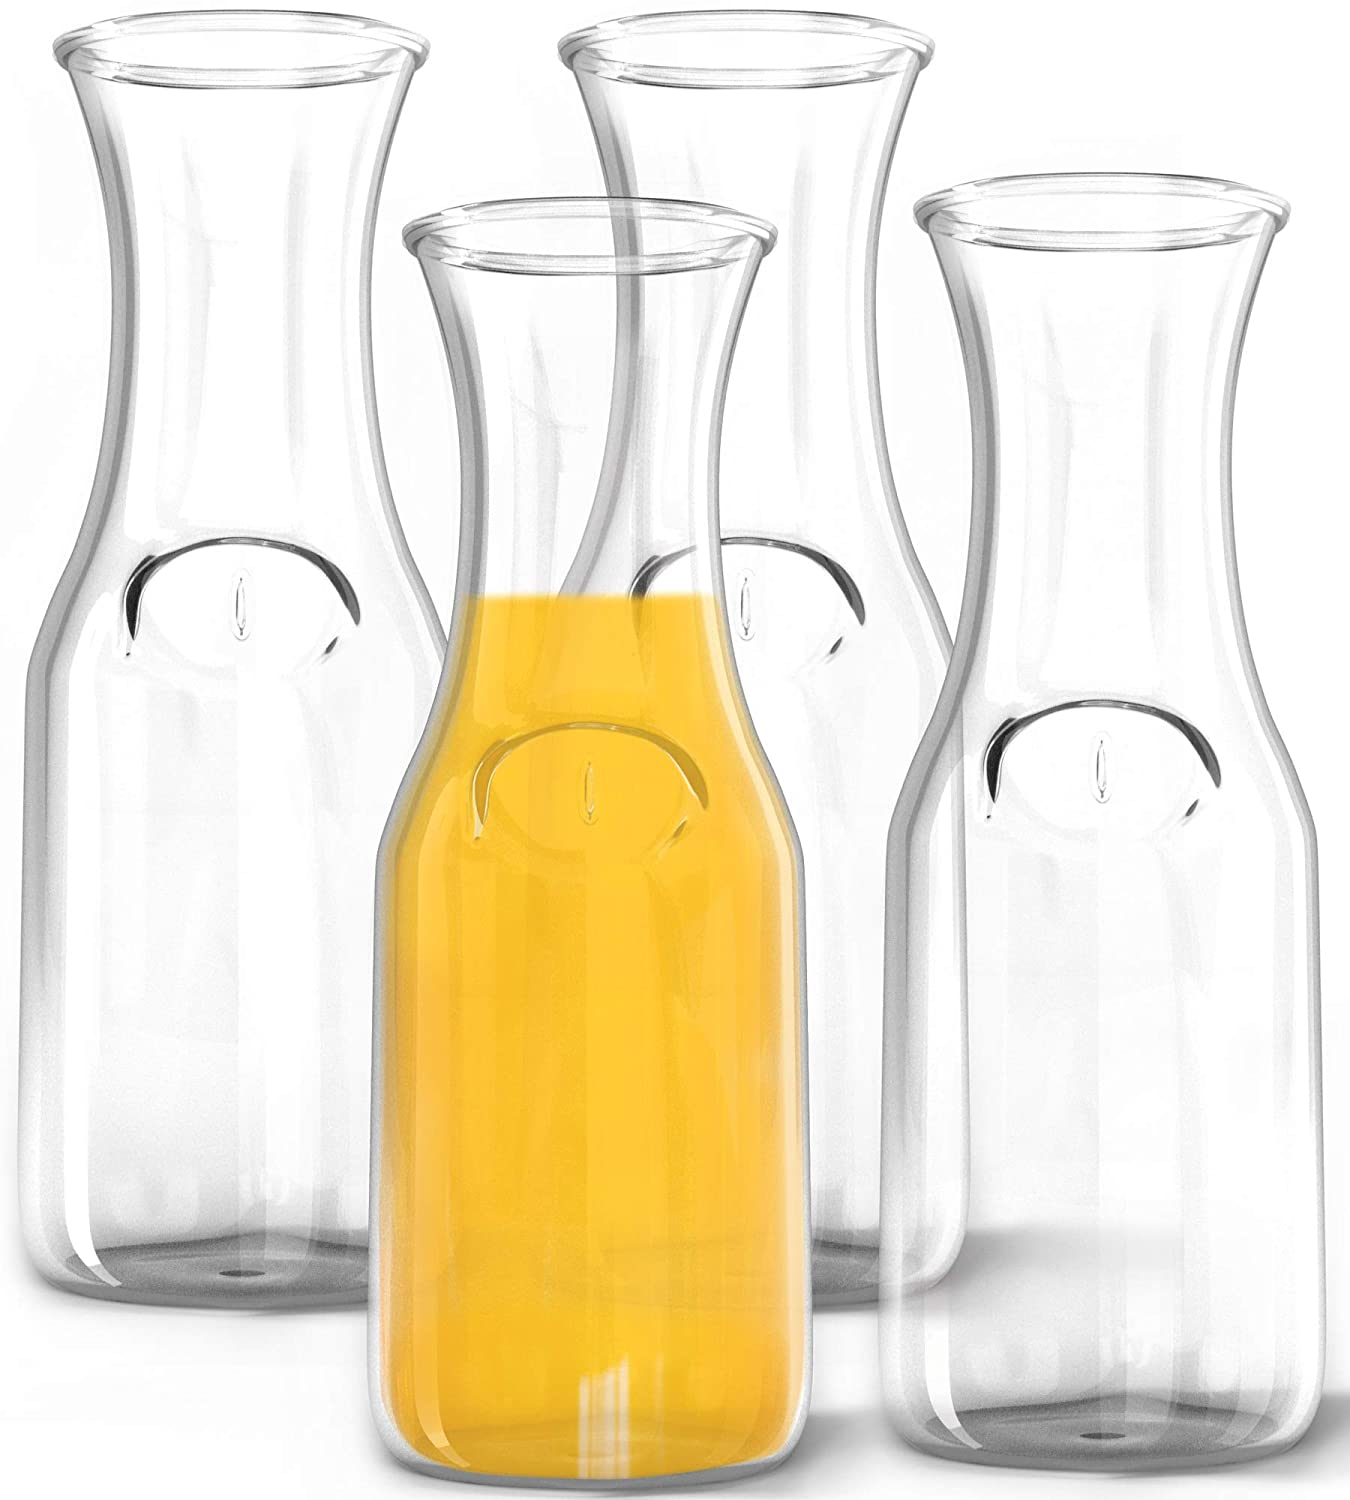 1 Liter Glass Carafe, 4 Pack - Elegant Wine Decanter and Drink Pitcher - Narrow Neck For Comfortable Grip, Wide Mouth For Easy Pouring - Great for Parties and Events – Kitchen Lux